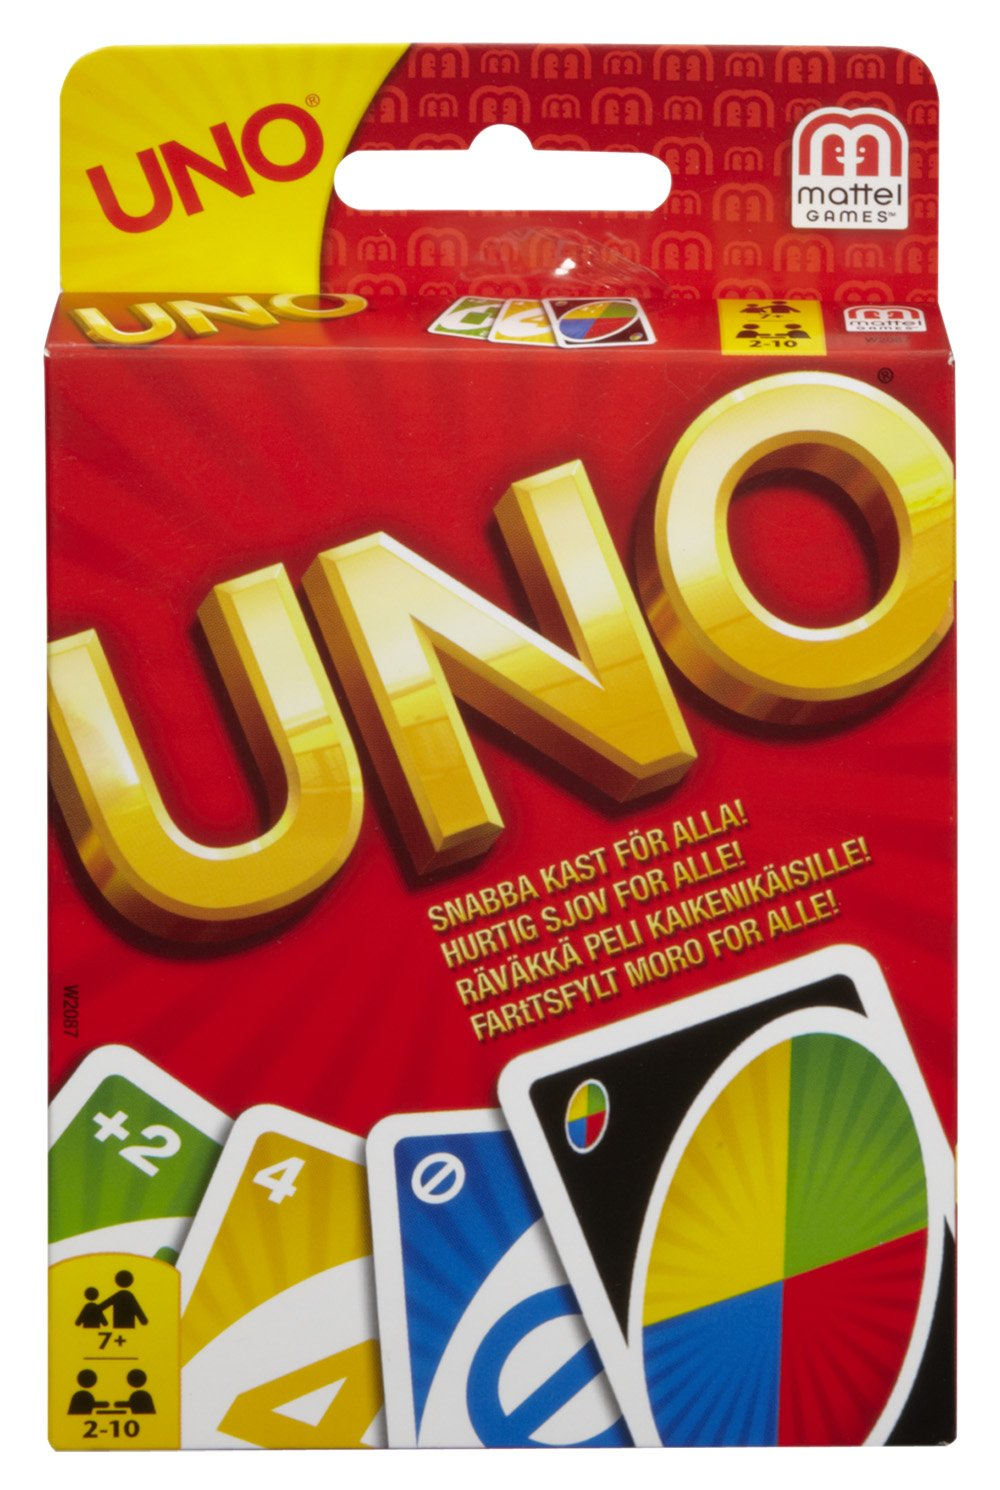 UNO https://amzn.to/2BXESo9